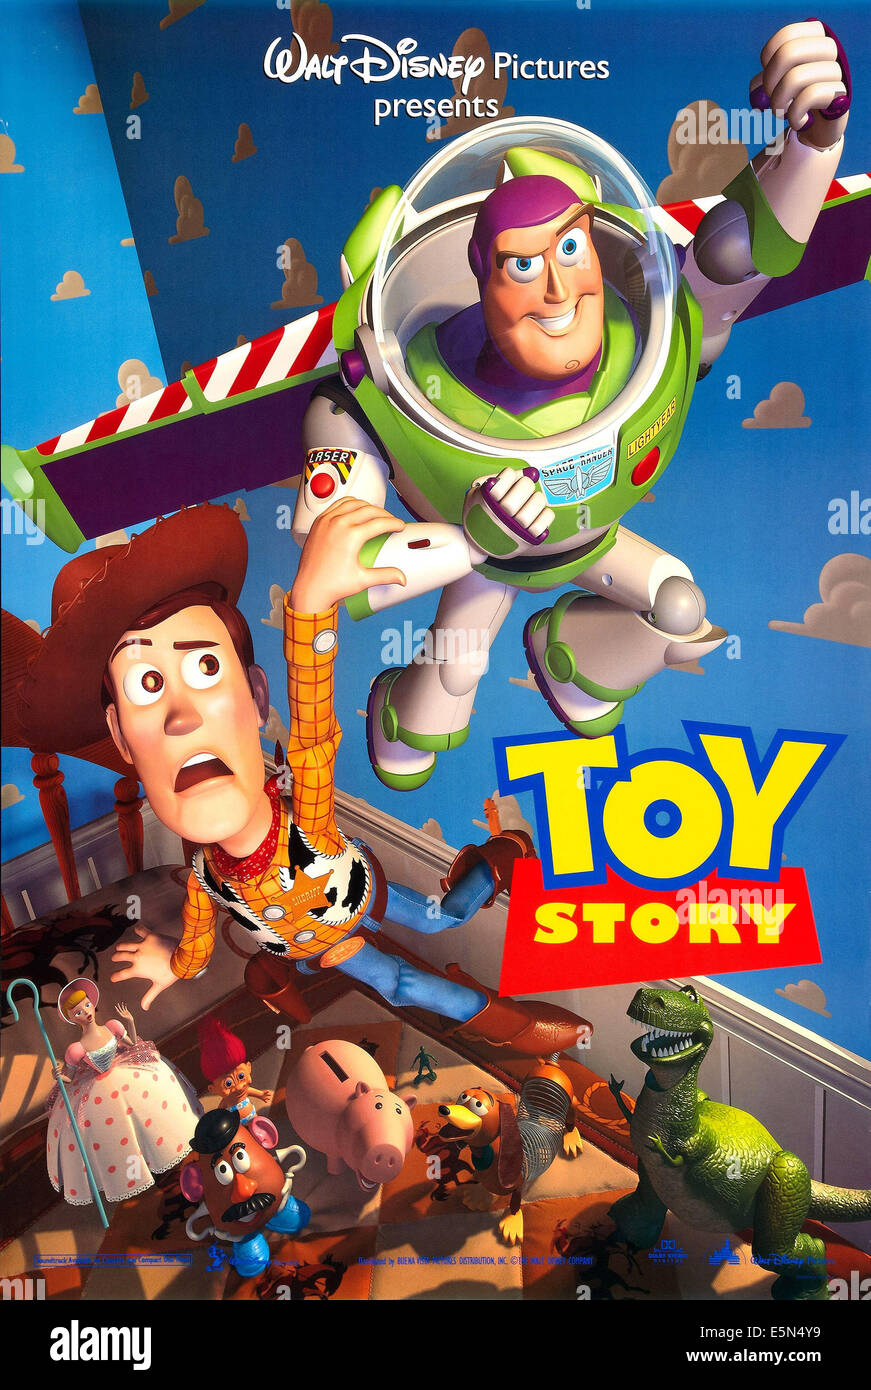 TOY STORY, Woody, Buzz Lightyear, 1995, poster art - Stock Image